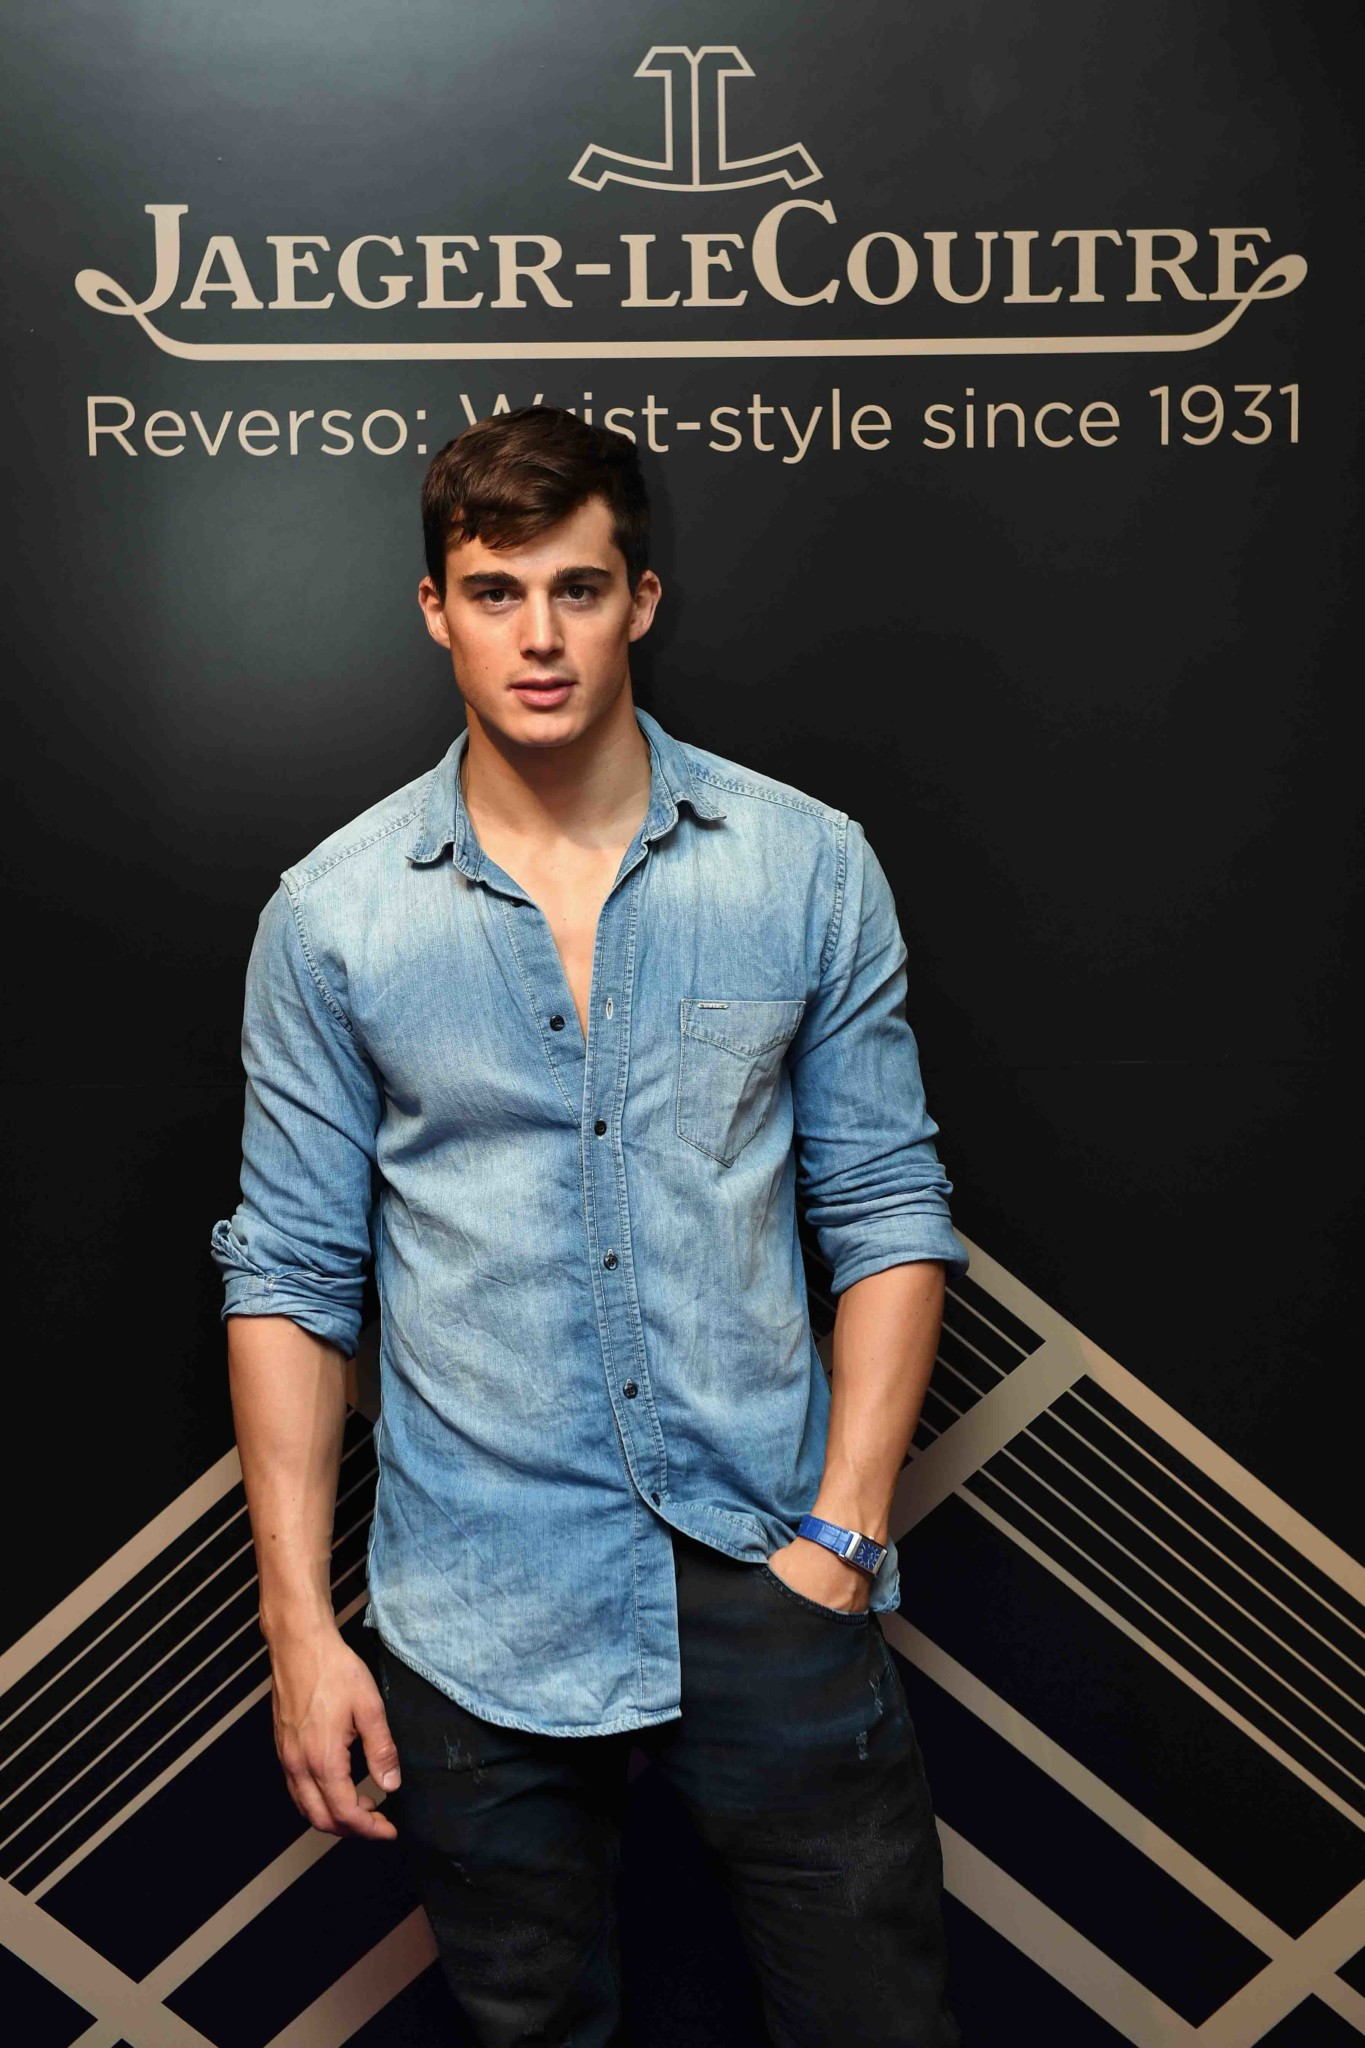 "LONDON, ENGLAND - MAY 31: Pietro Boselli attends Jaeger-LeCoultre & Christie's ""Roaring 20's, Reverso 30's"" Party at Christie's South Kensington on May 31, 2017 in London, England. (Photo by Chris J Ratcliffe/Getty Images for Jaeger-LeCoultre) *** Local Caption *** Pietro Boselli"